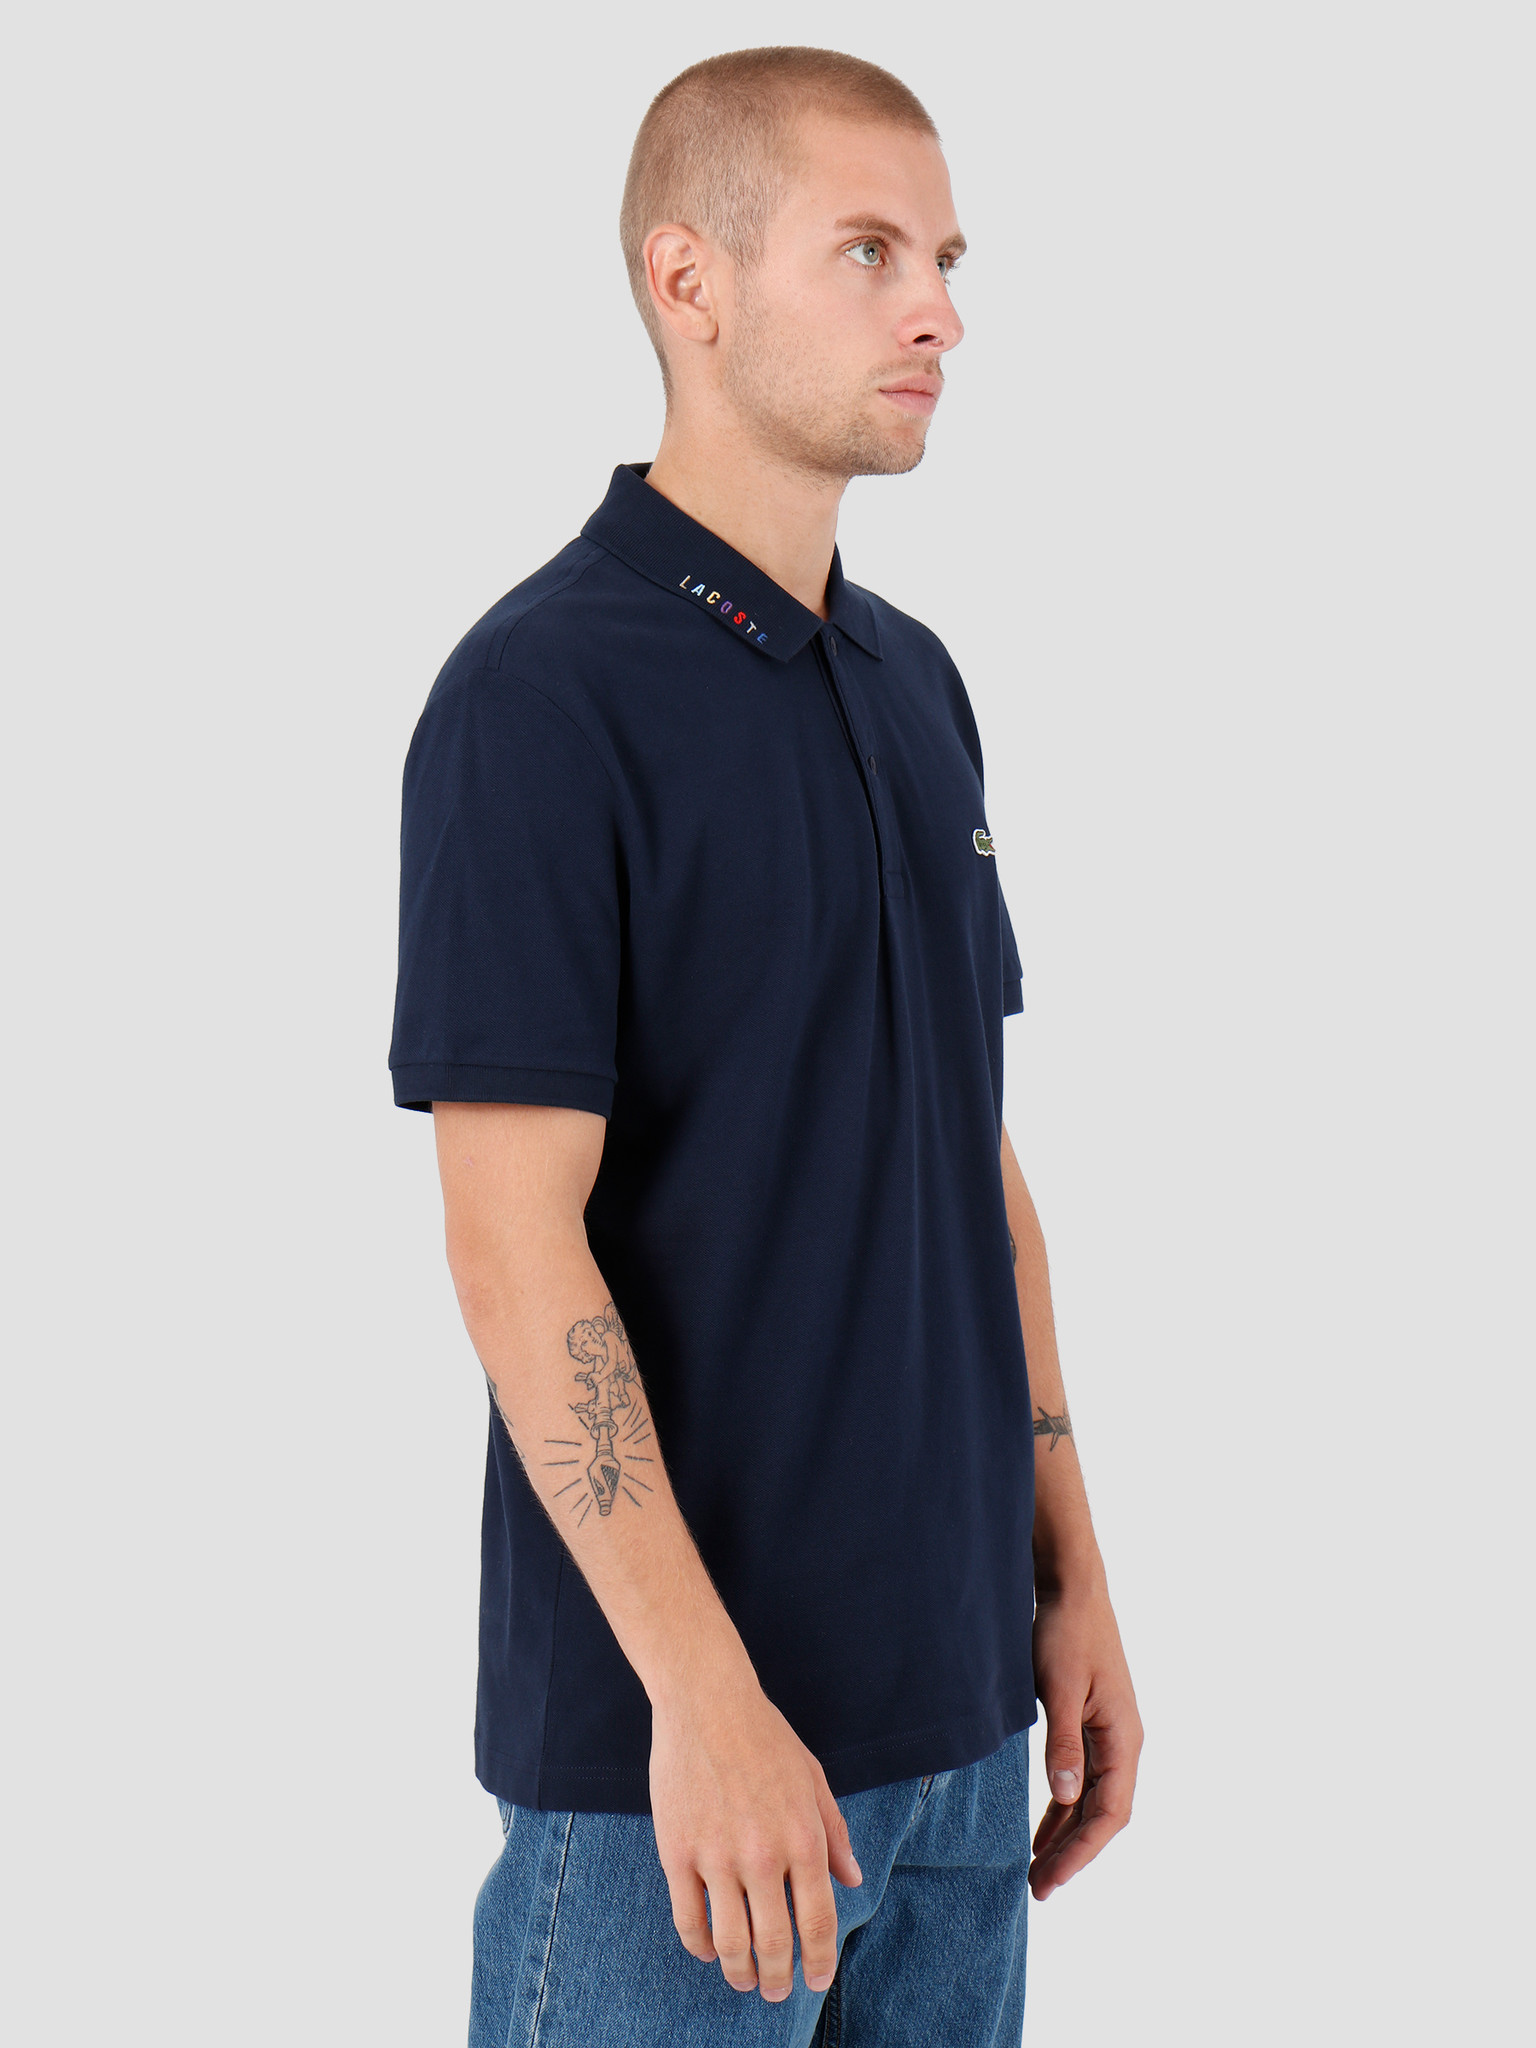 Lacoste Lacoste 1HP3 Shortsleeve Polo Navy Blue PH8525-93